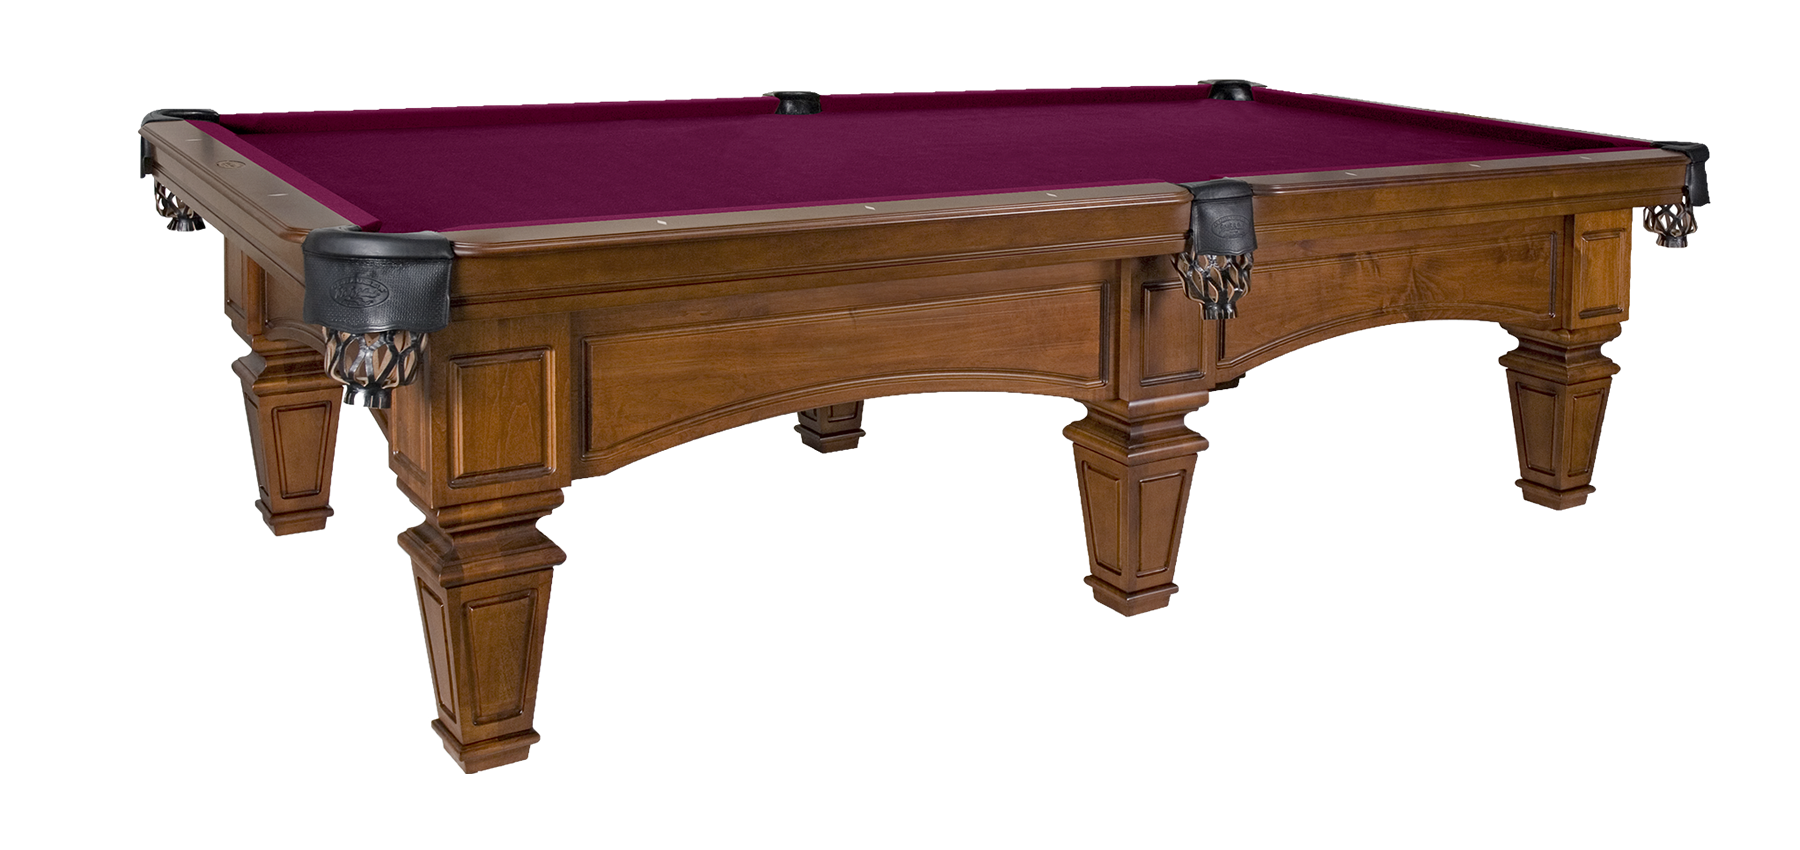 Olhausen Belle Meade Pool Table